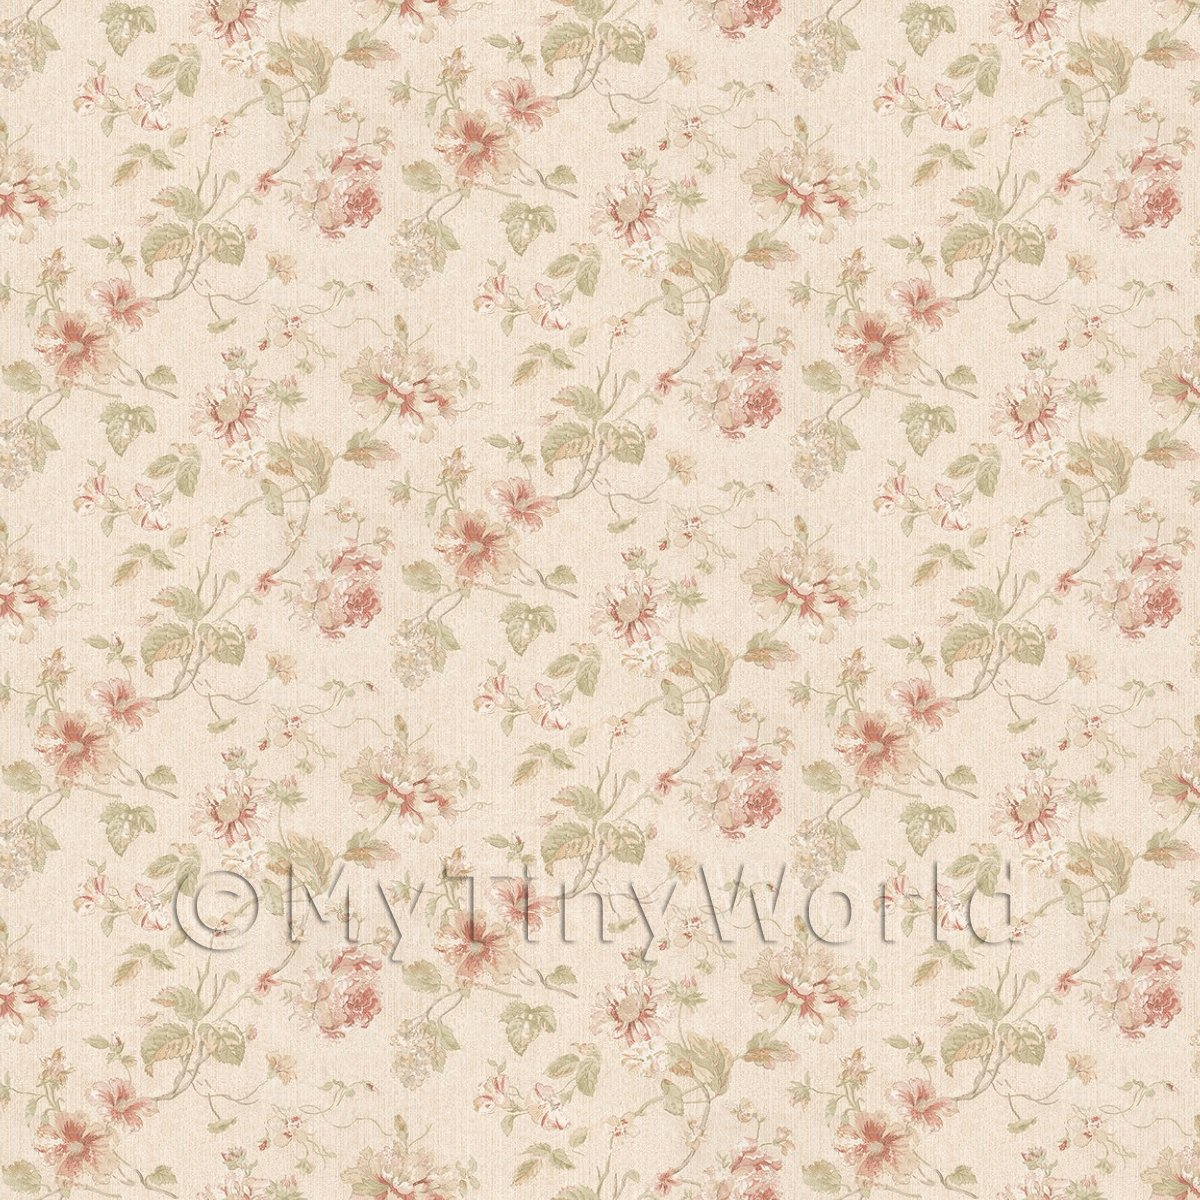 Pack of 5 Dolls House Dark Pink Mixed Flower Design Wallpaper Sheets